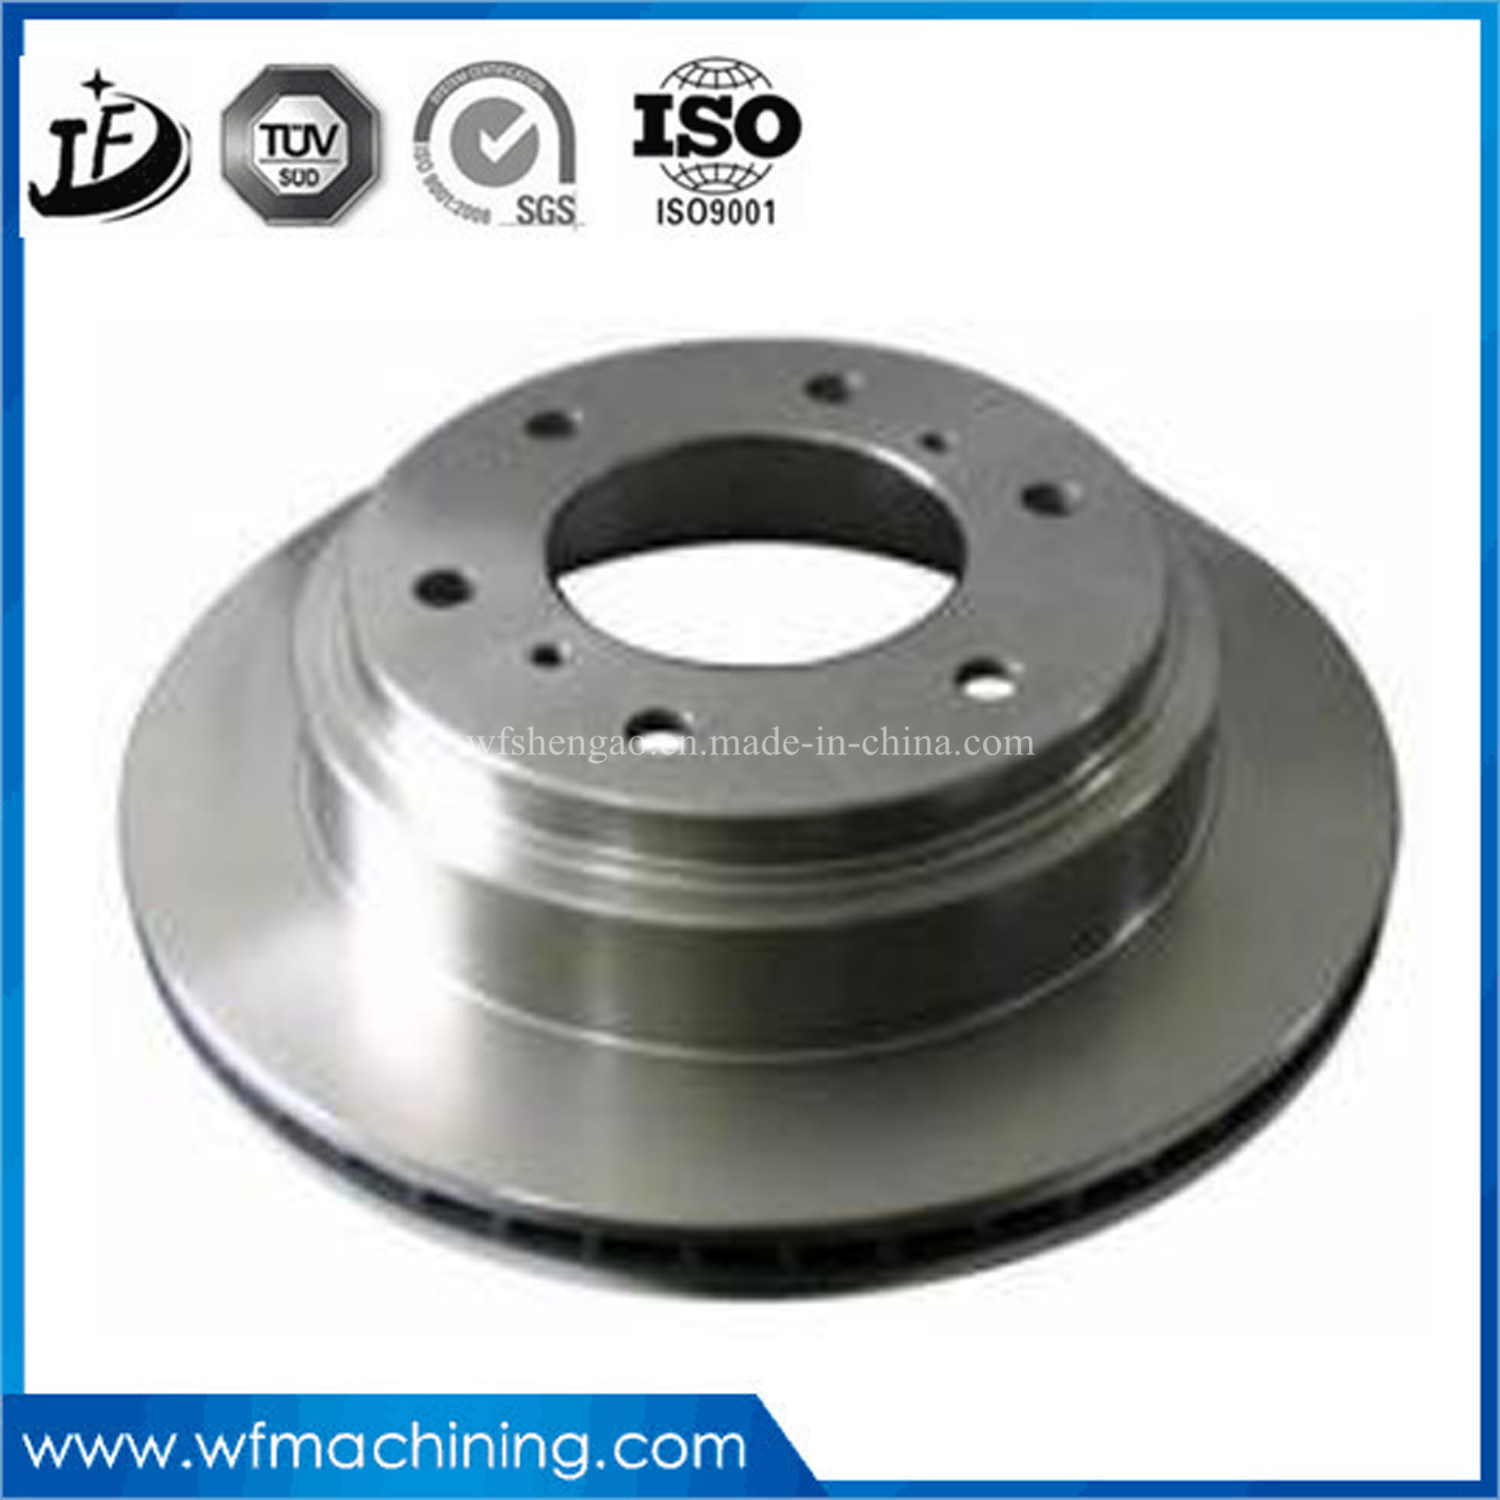 OEM Forged Steel/Stainless Steel/Aluminum Brake Discs with CNC Machining